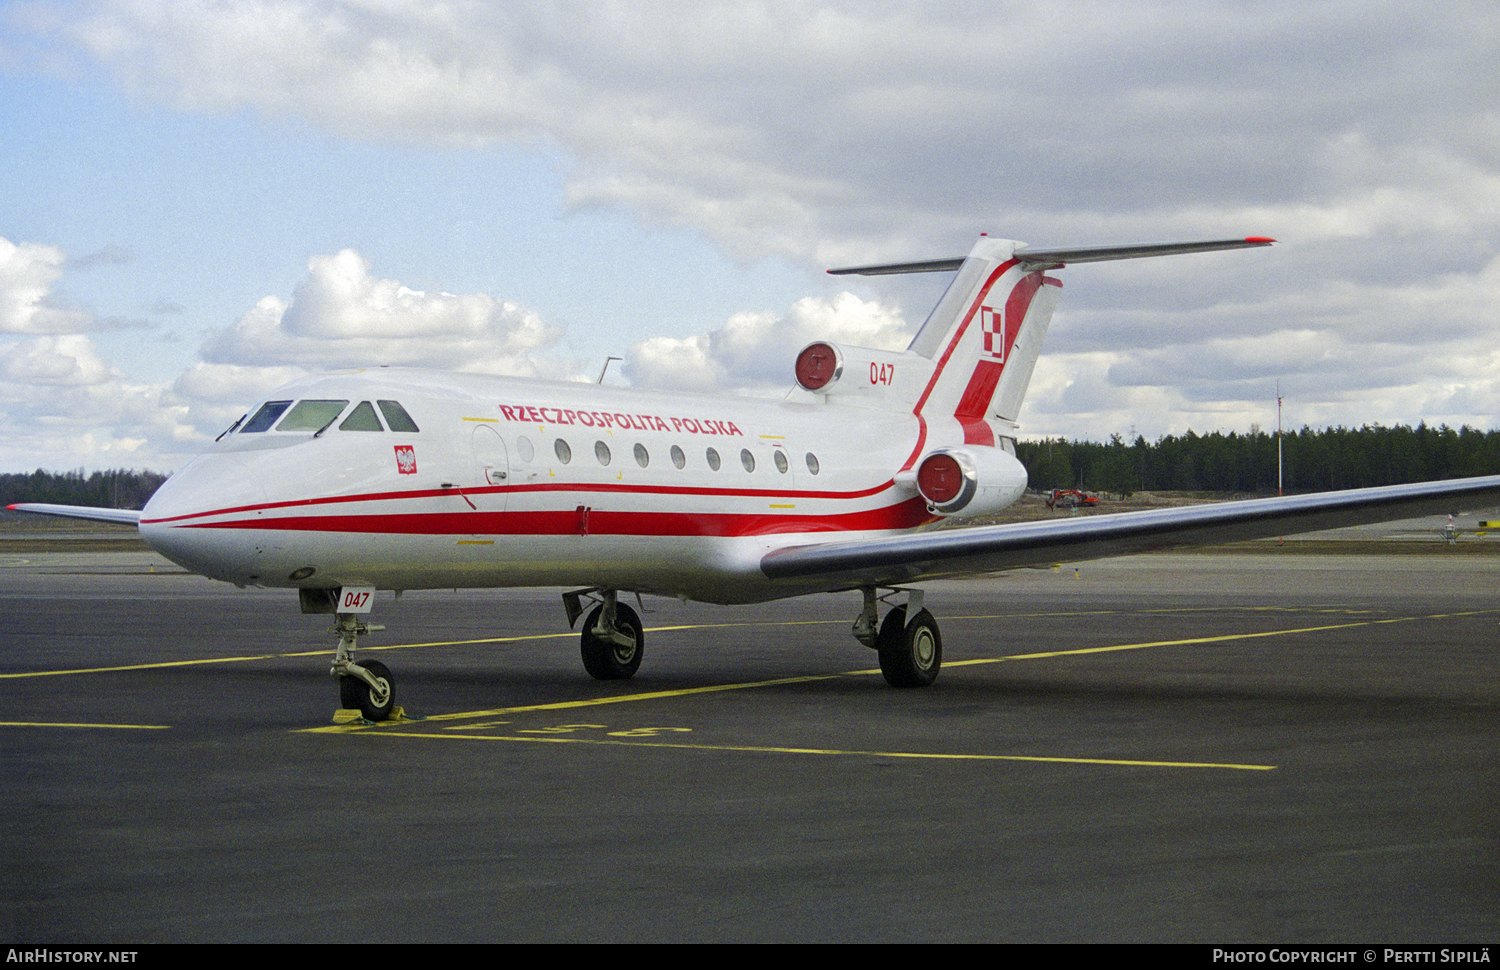 Aircraft Photo of 047 | Yakovlev Yak-40 | Republic of Poland - Rzeczpospolita Polska | AirHistory.net